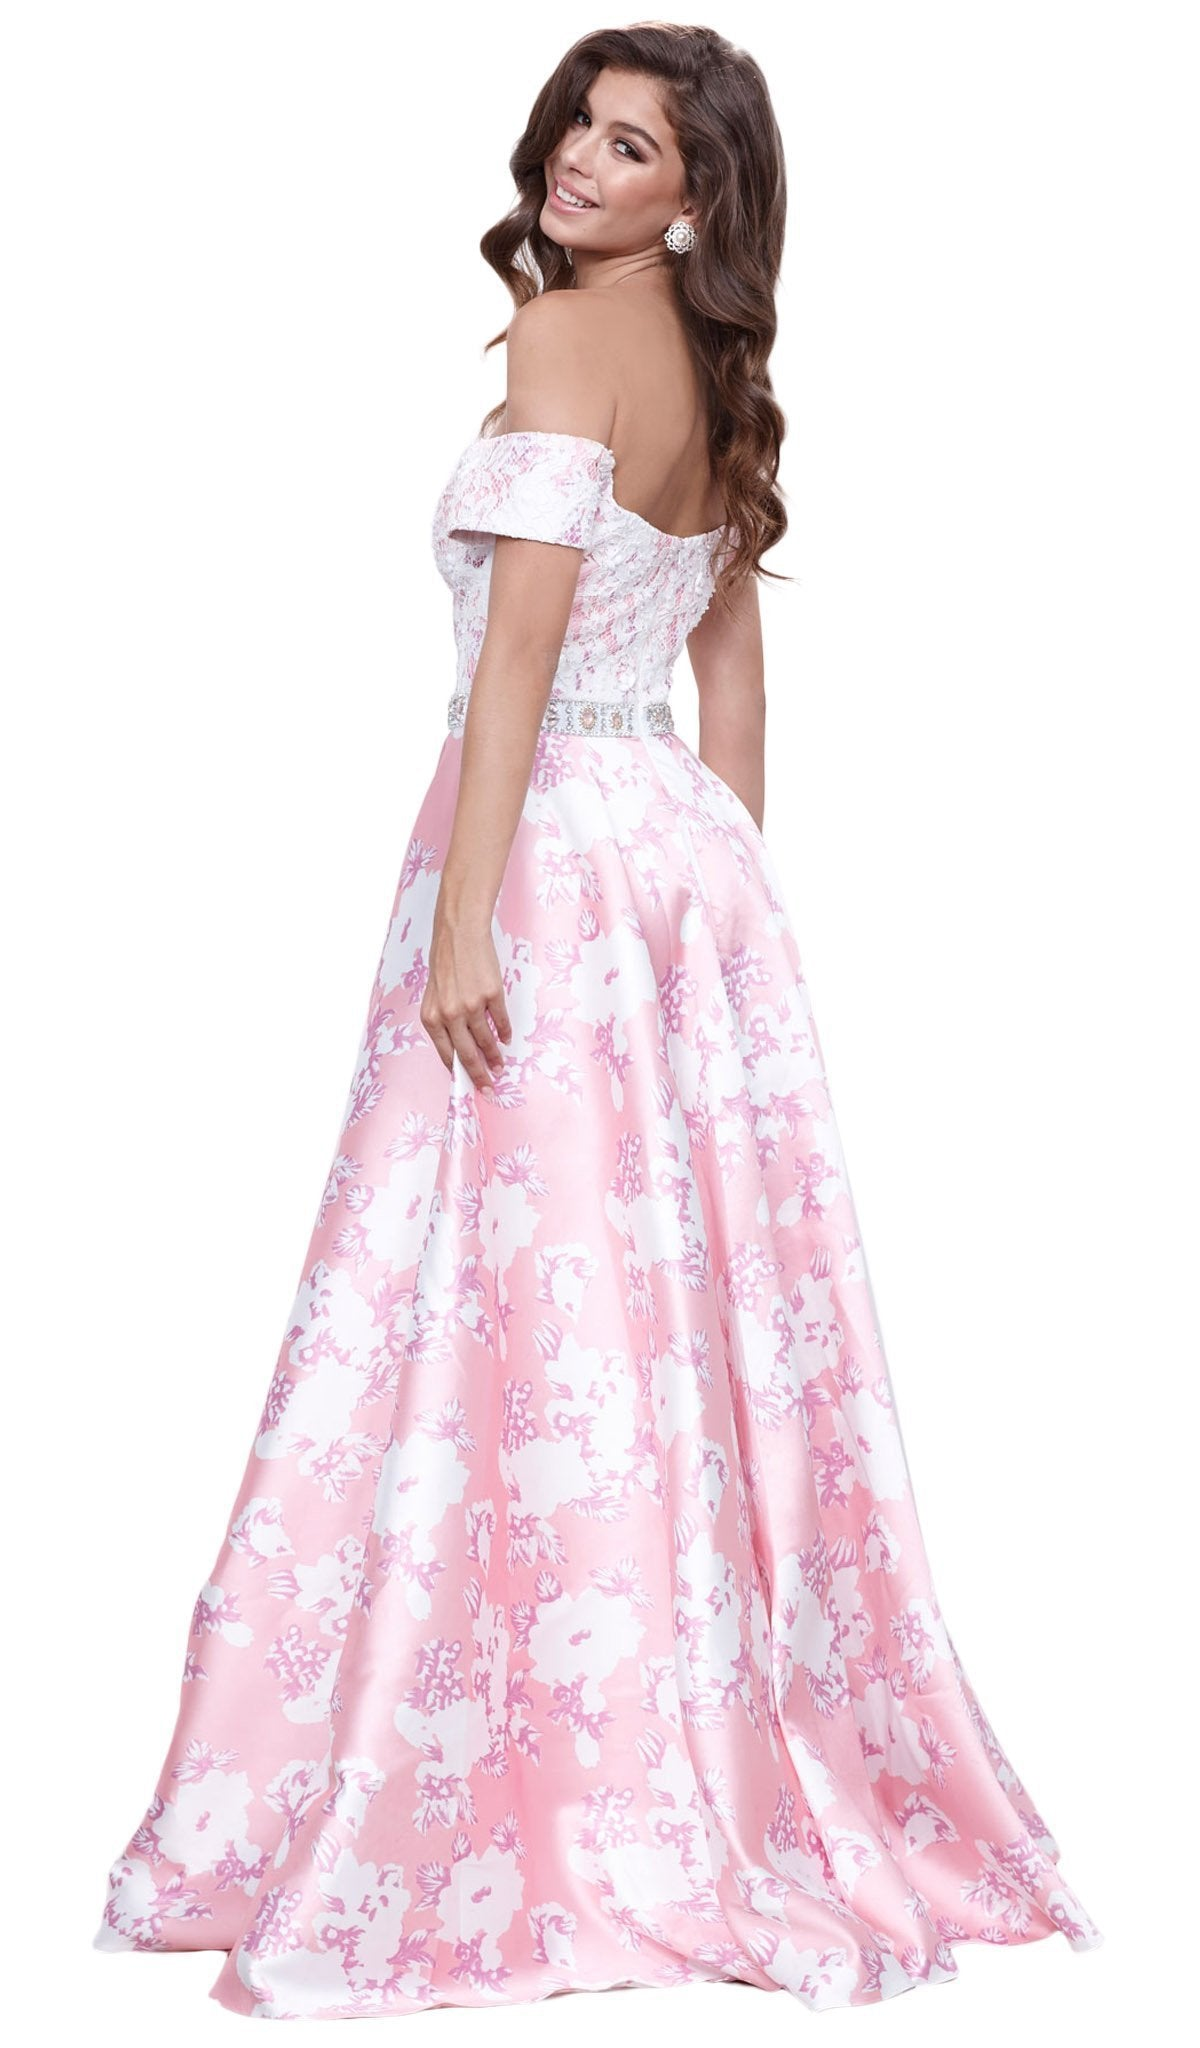 Nox Anabel - Lace Off Shoulder Floral A-Line Gown 8301SC